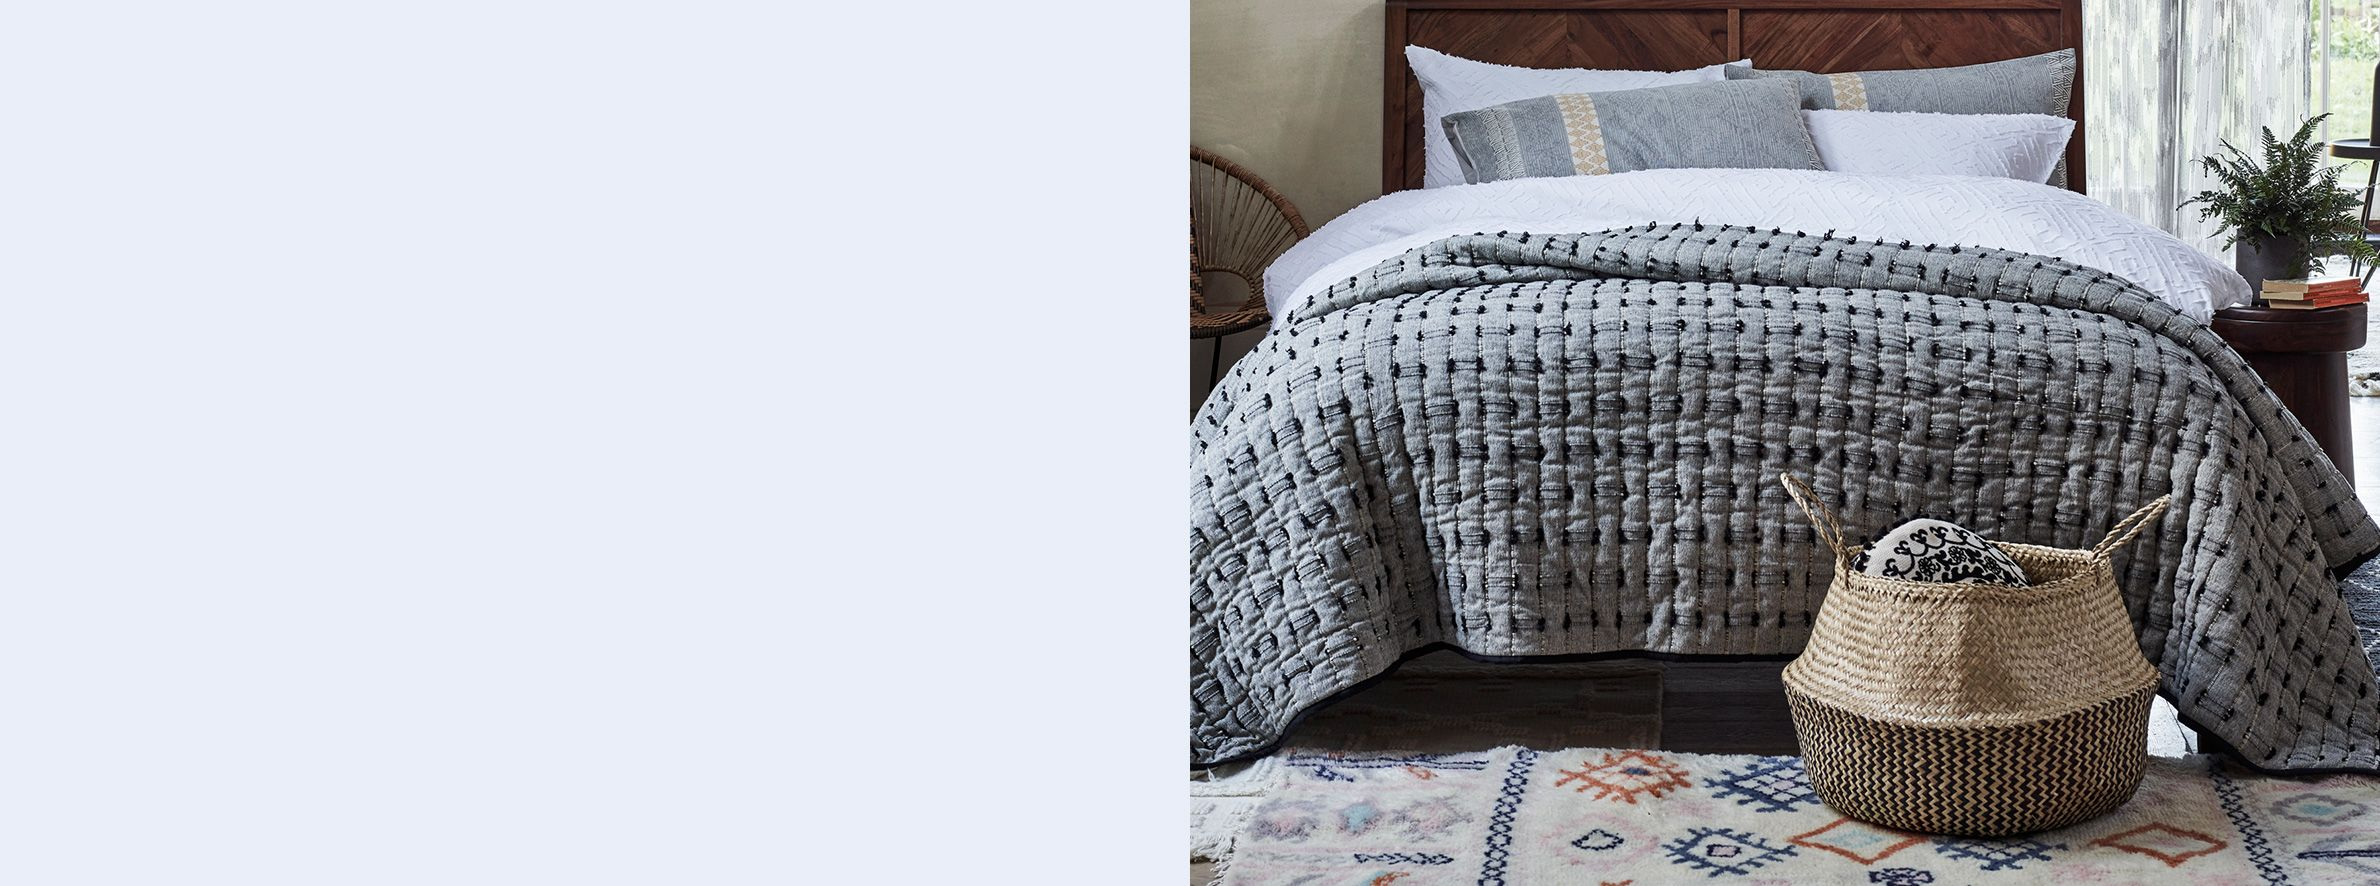 King Size Bed Throws Throws Blankets Bedspreads John Lewis Partners